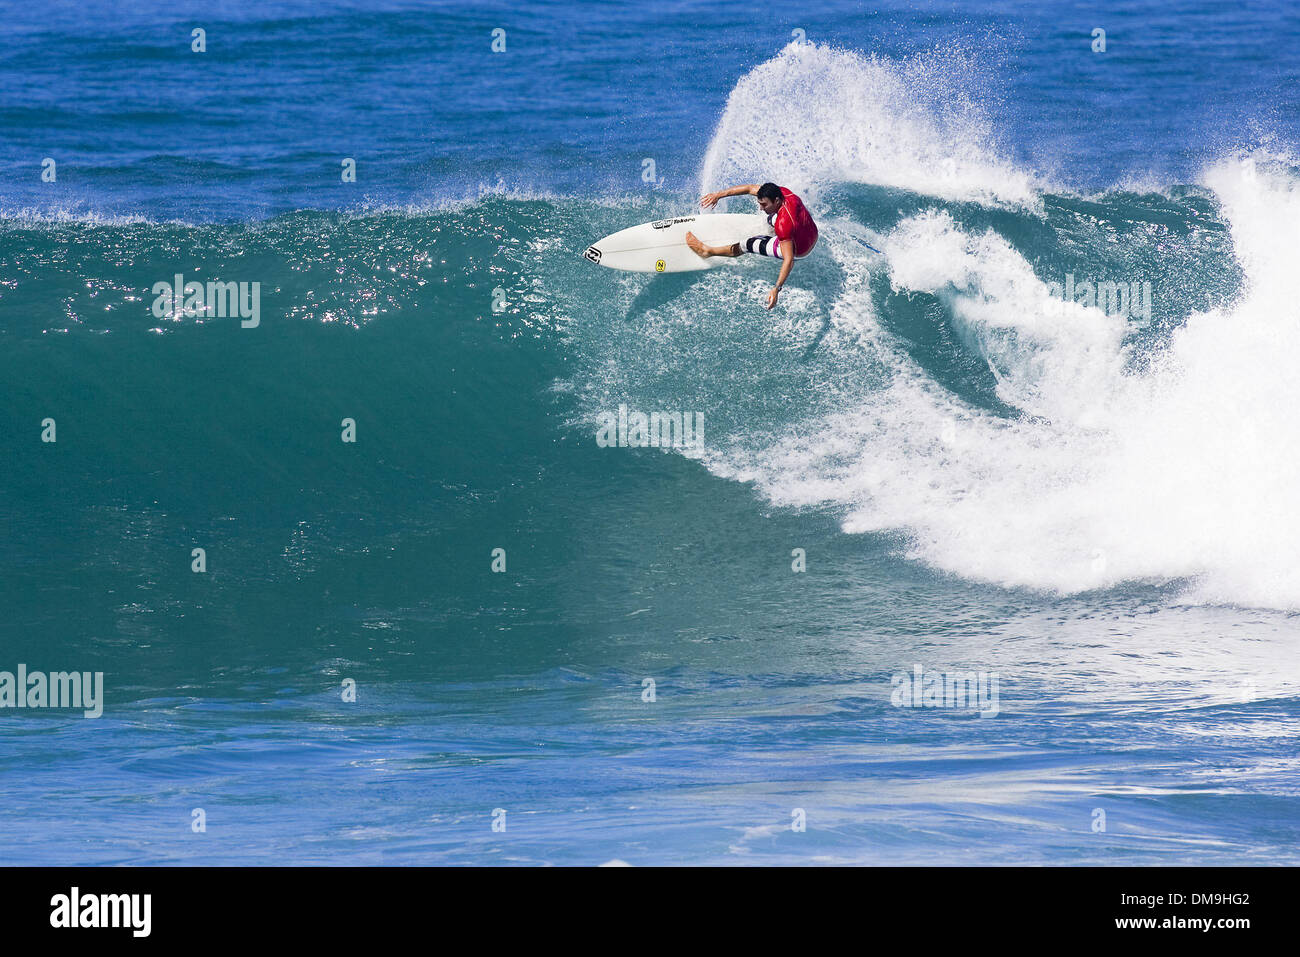 Nov 28, 2005; Sunset Beach, Oahu, Hawaii, USA; ASP WCT world number 11 JOEL PARKINSON (Coolangatta, Gold Coast, Aus) was unstoppable in his round of 64 heat against Ian Walsh (Haw), Pablo Paulino (Bra) and Daniel Ross (Aus) at the O'Neill World Cup at Sunset Beach, Hawaii today. ParkinsonÕs strong victory saw him advance comfortably to the round of 32, eliminating Paulino and Ross  - Stock Image